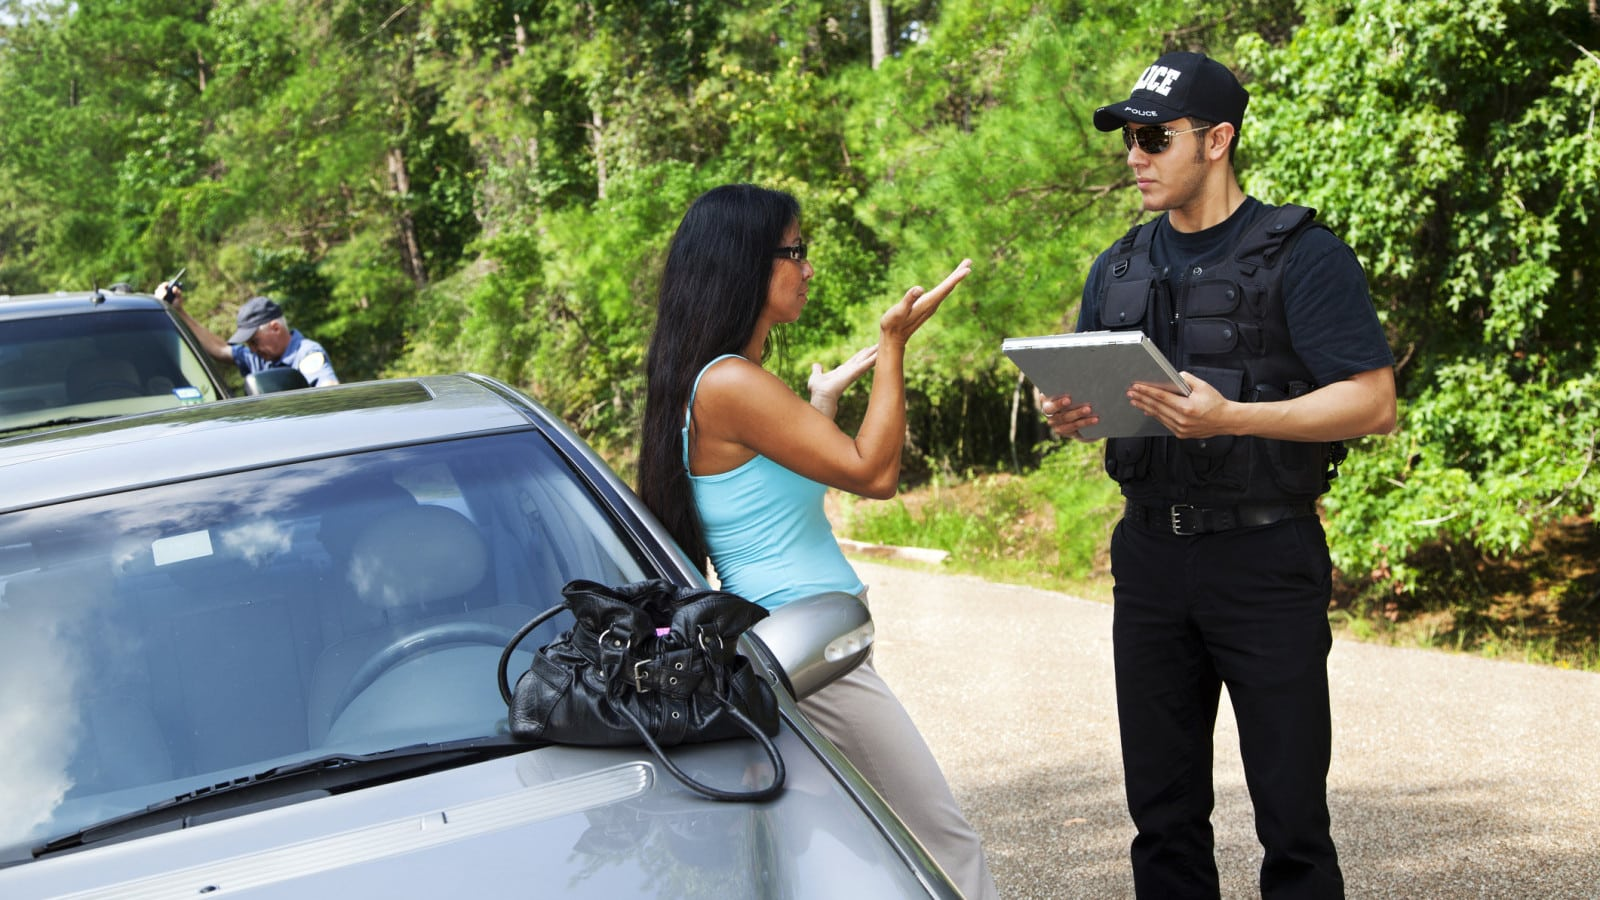 Policeman Questioning A Woman Stock Photo